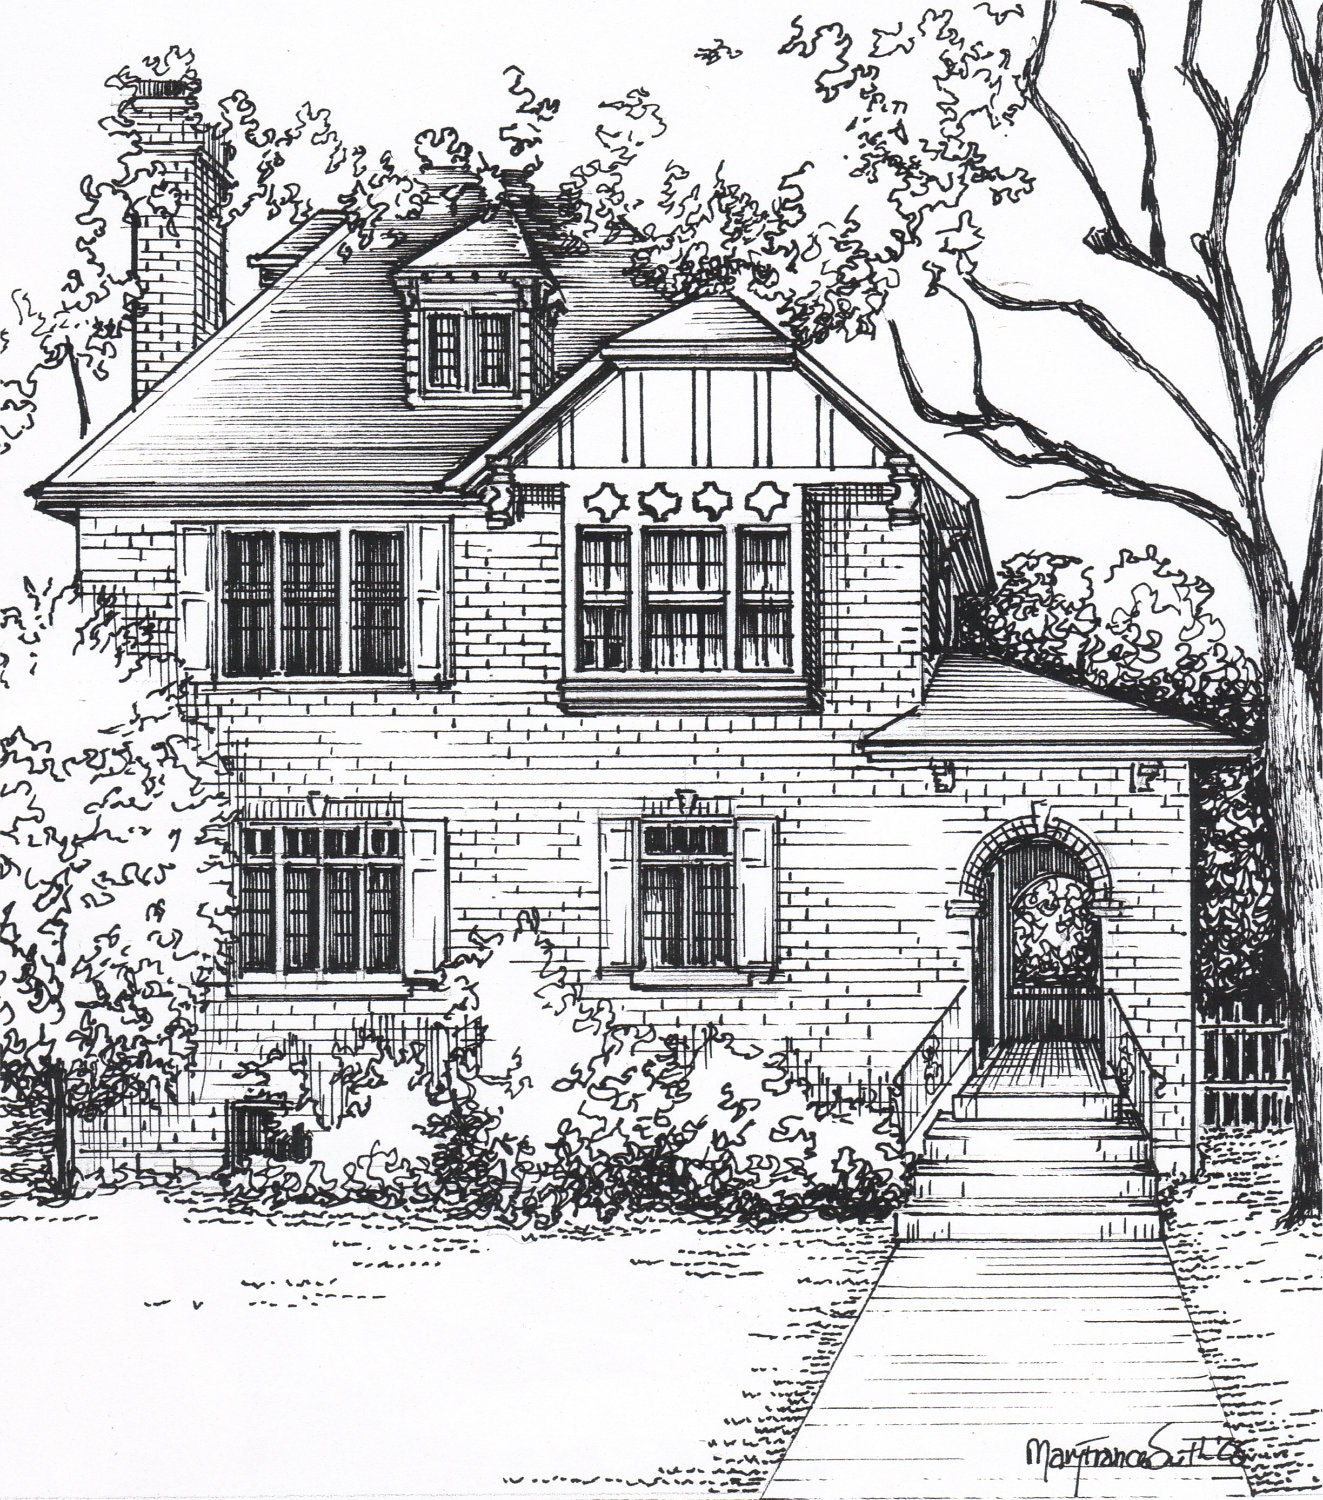 Custom house sketch hand drawn home portrait in ink for Drawings of a house